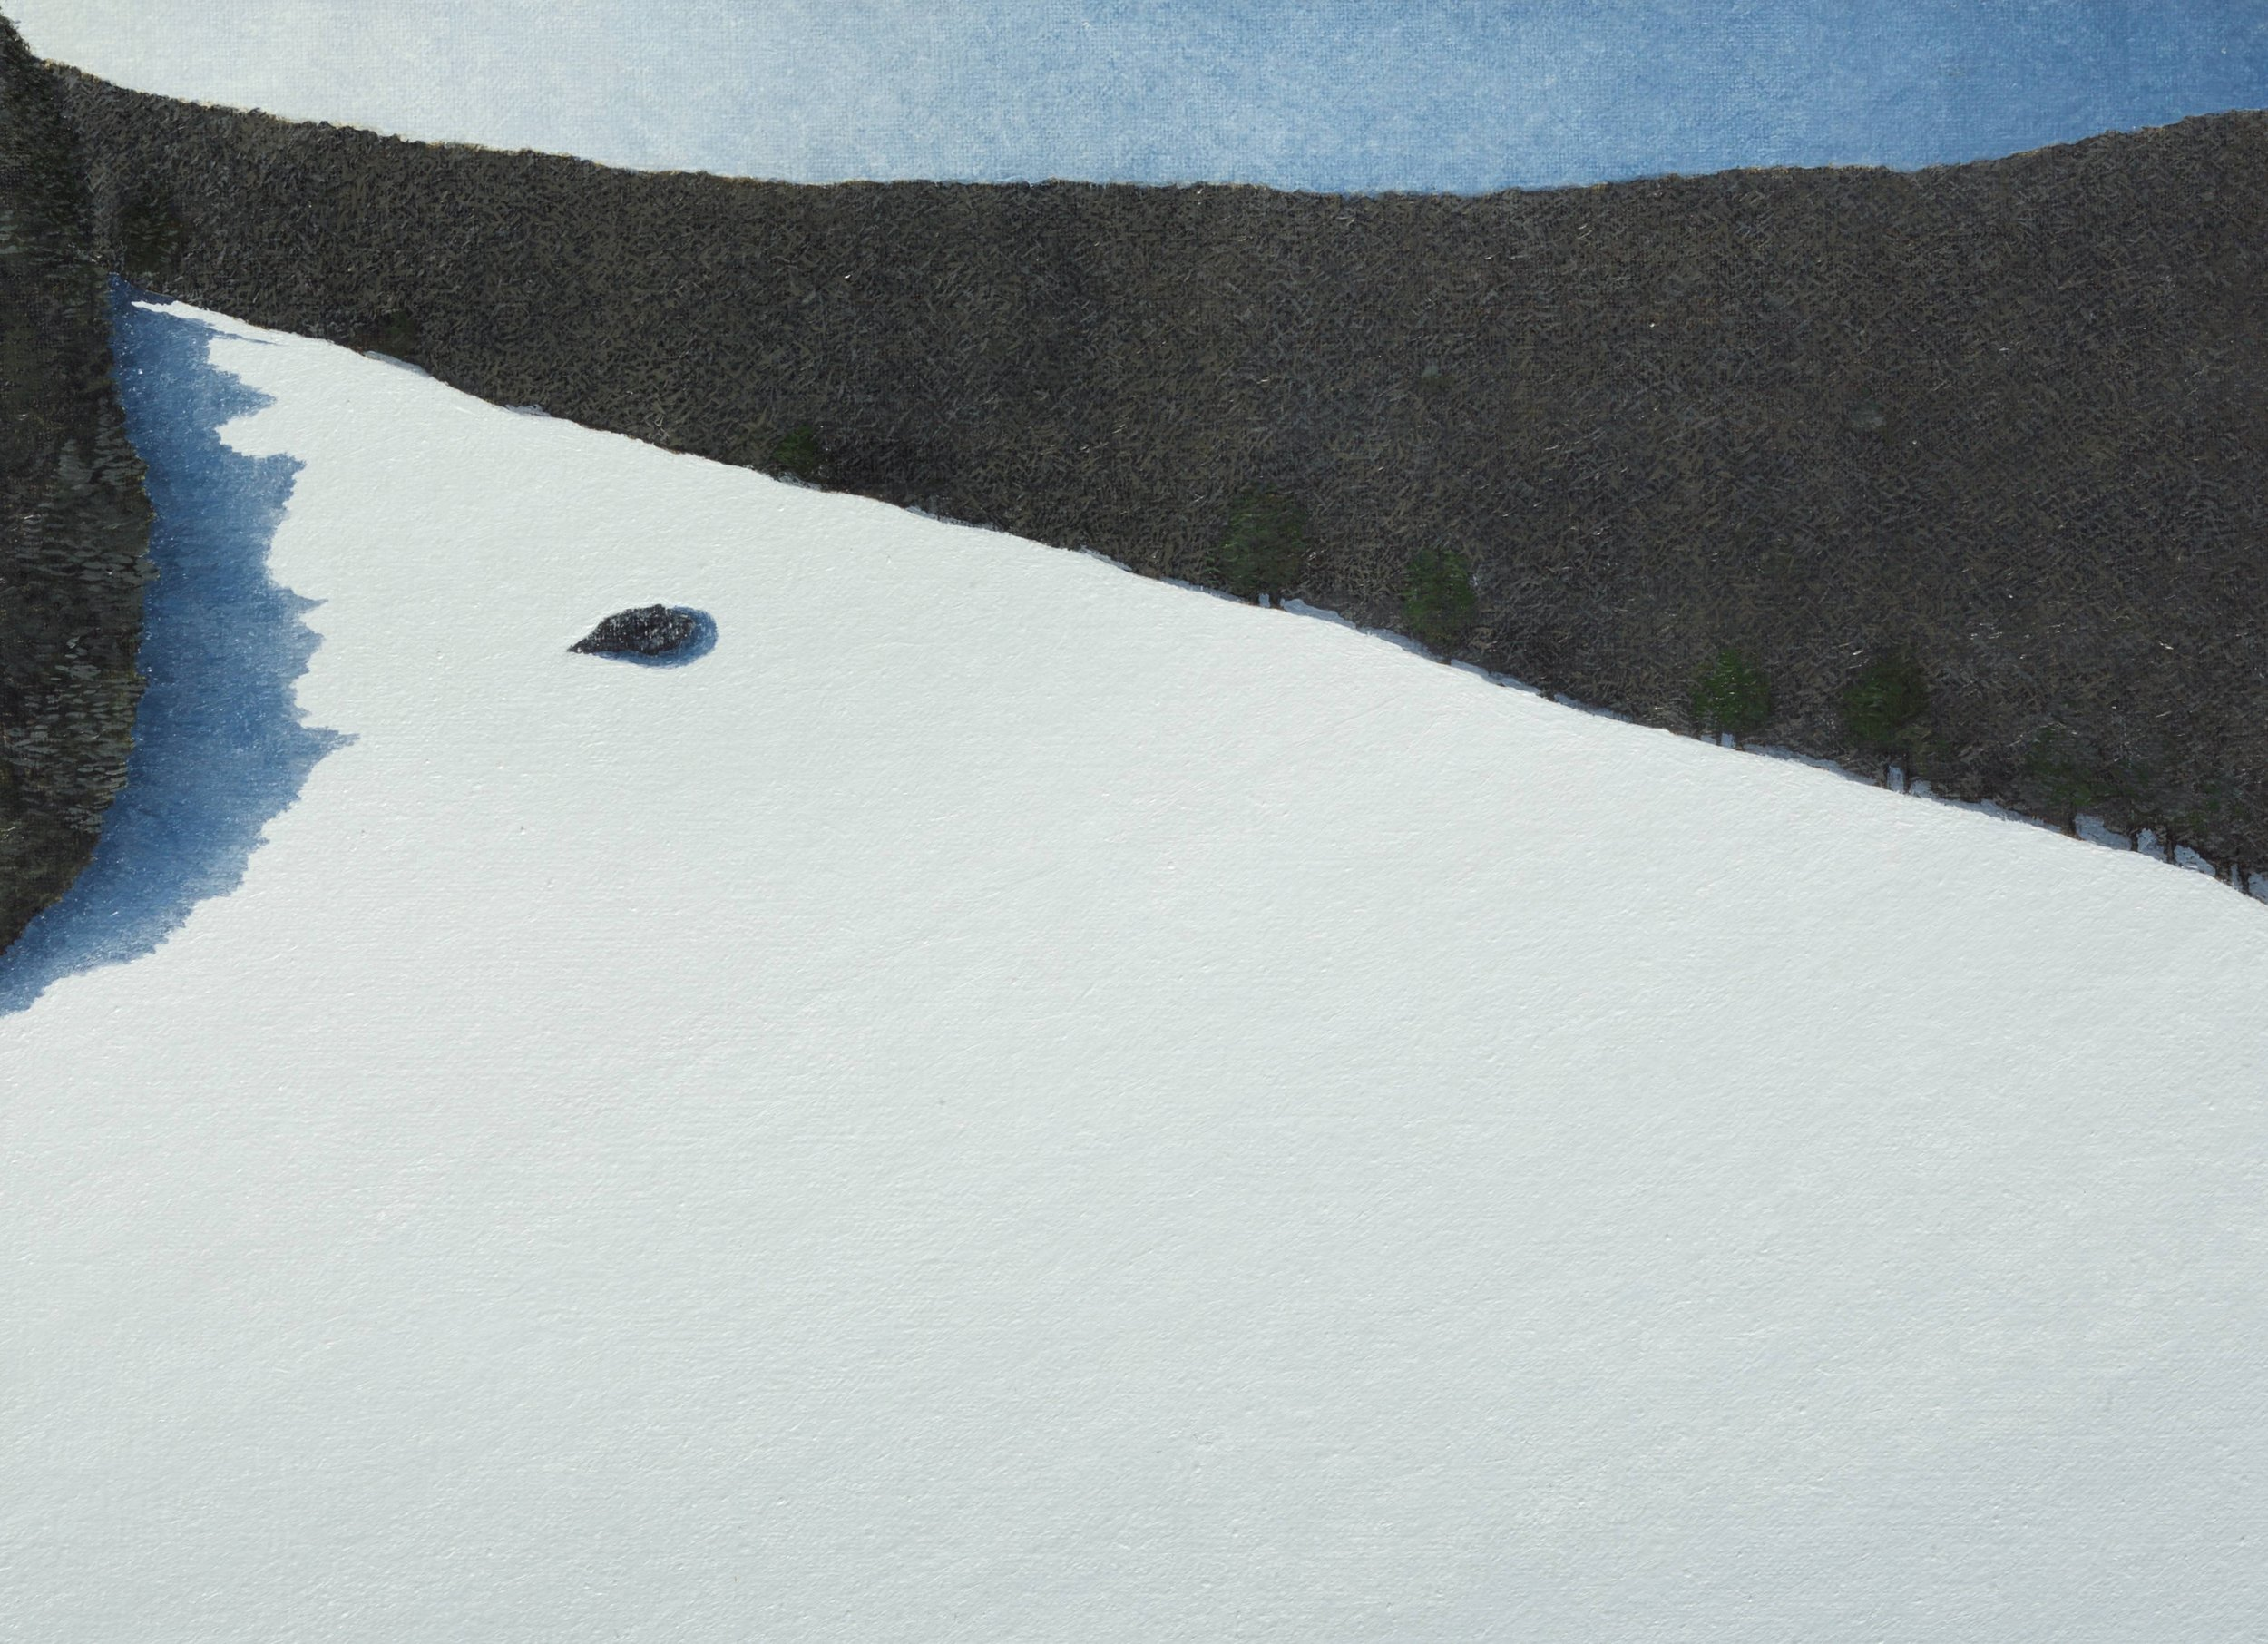 Rock and Snow With Shadows